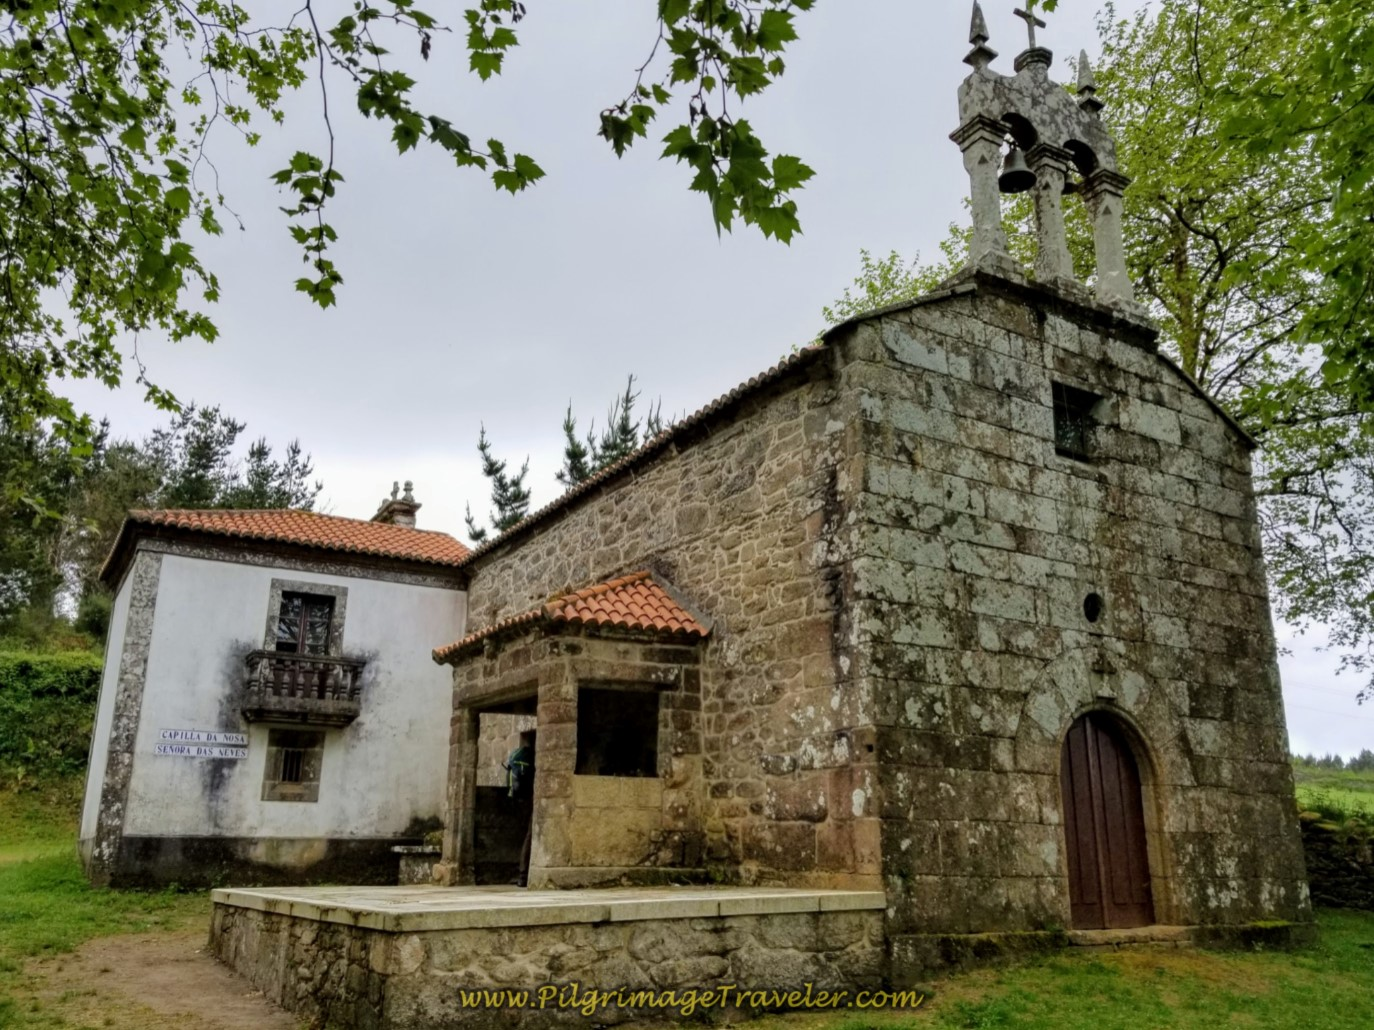 Capela da Nosa Señora das Neves on day three of the Camino Finisterre